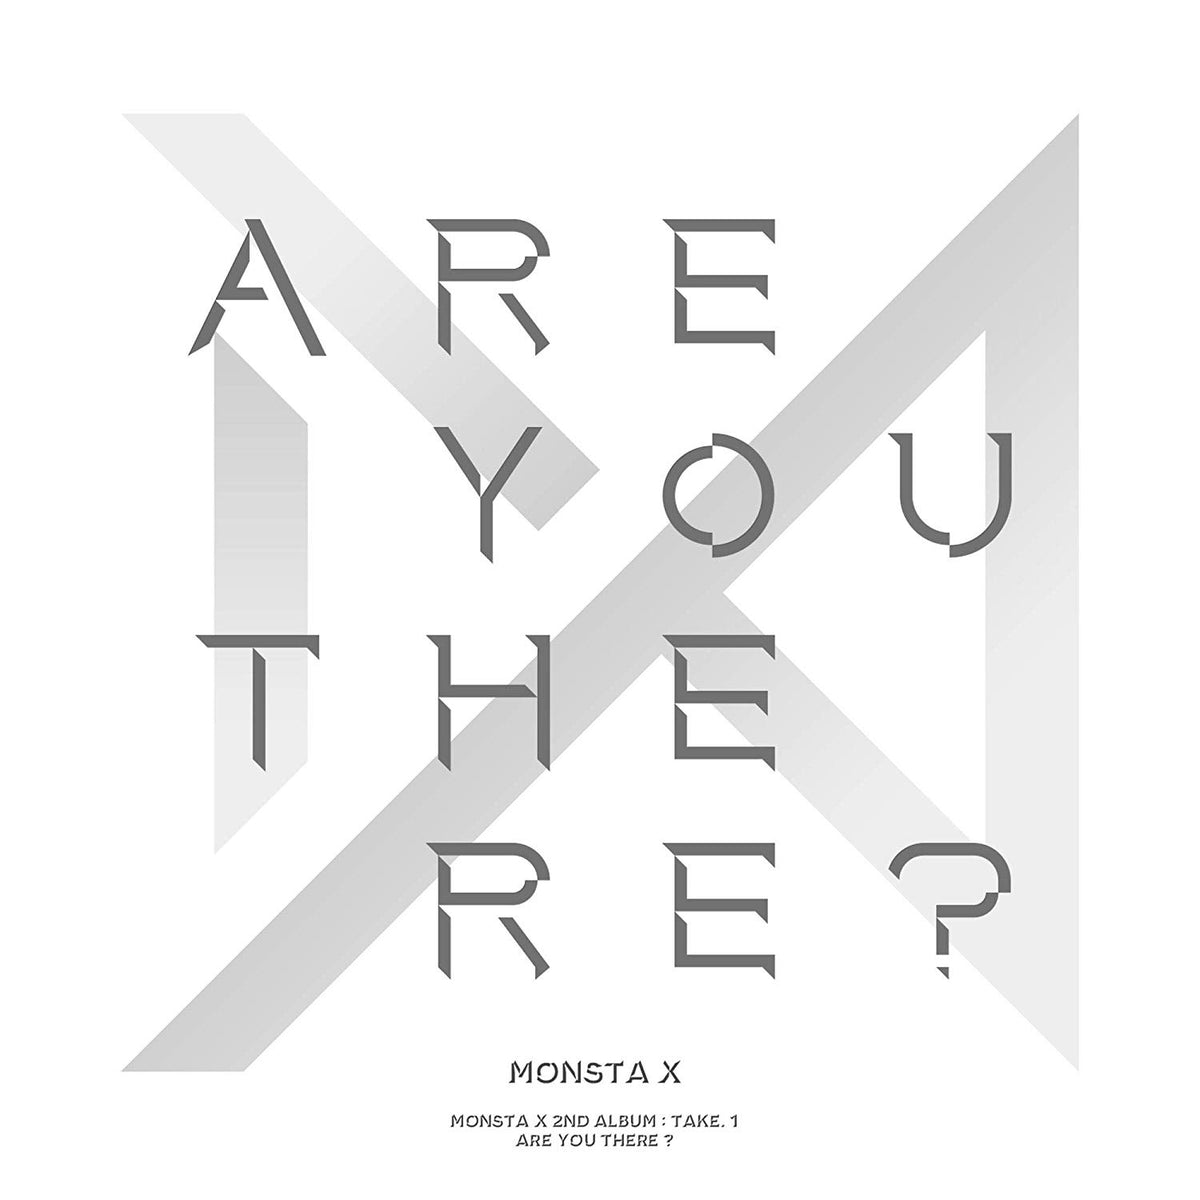 Monsta X - 2nd Album - Take.1 (Are You There?)